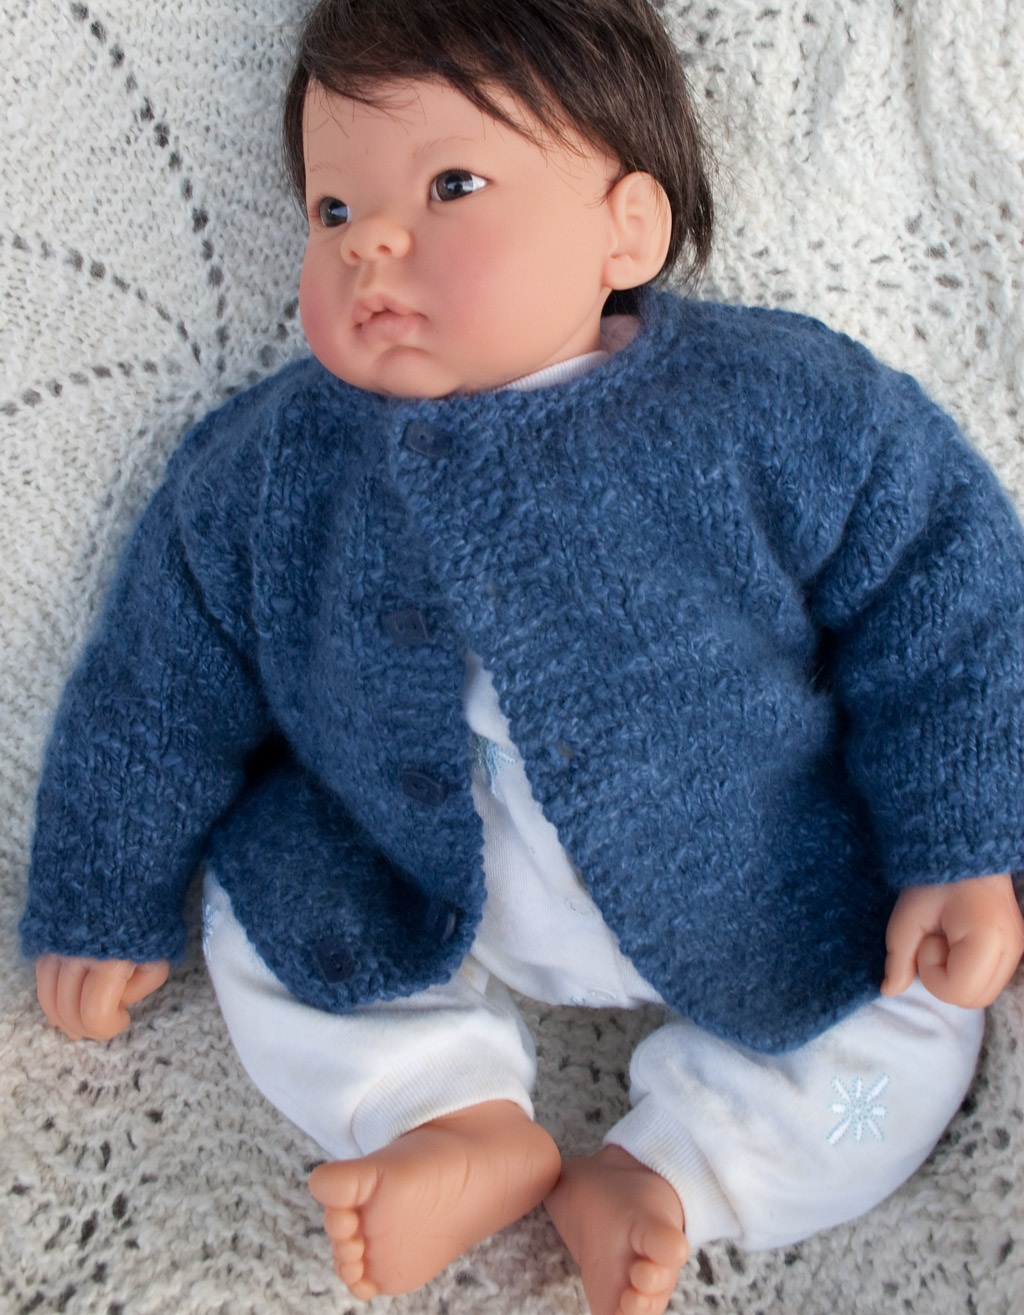 Little Boy Blue Angora Baby Cardigan Nancy Elizabeth Designs